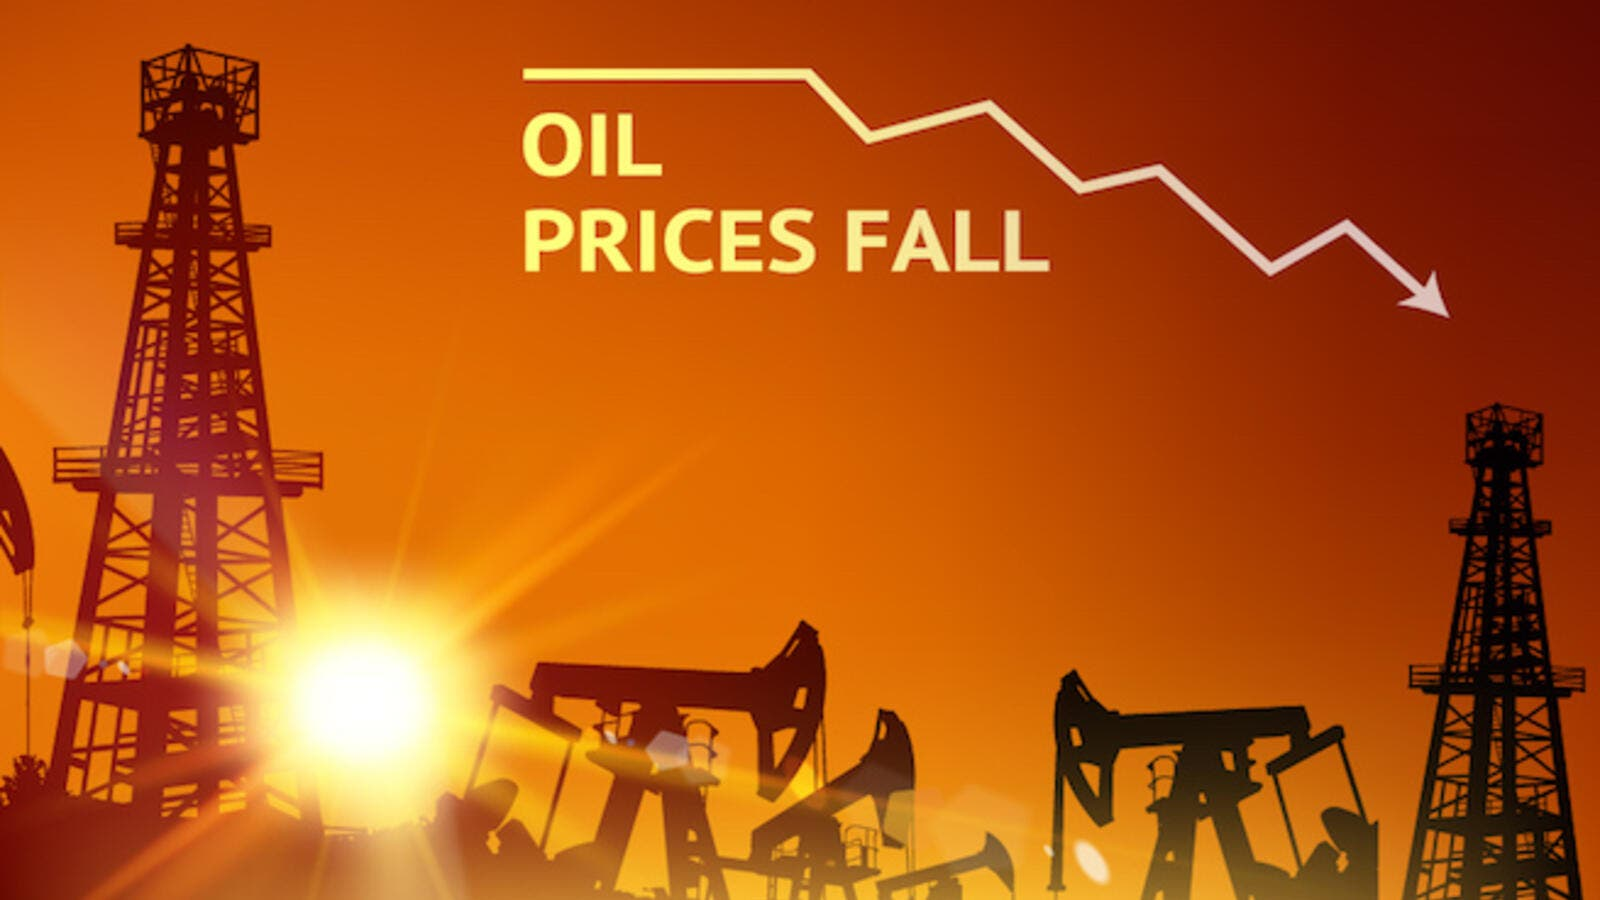 The oil market showed signs of edging up on Monday as Opec hinted that it might extend or even deepen its pledged output curbs. (Shutterstock)